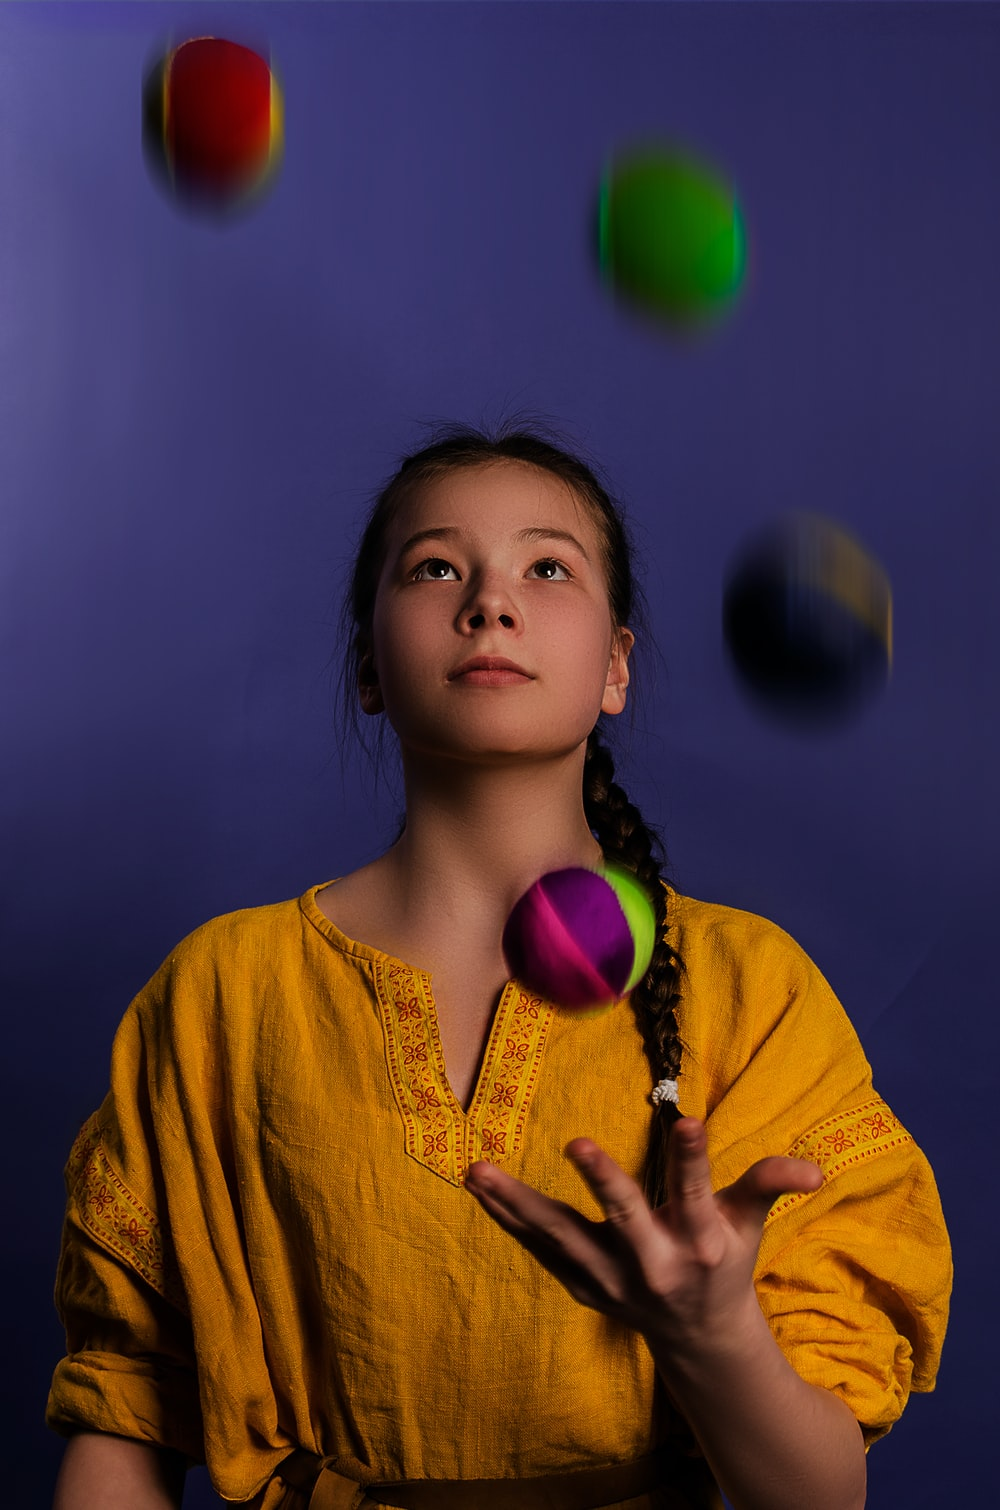 woman playing assorted-color balls